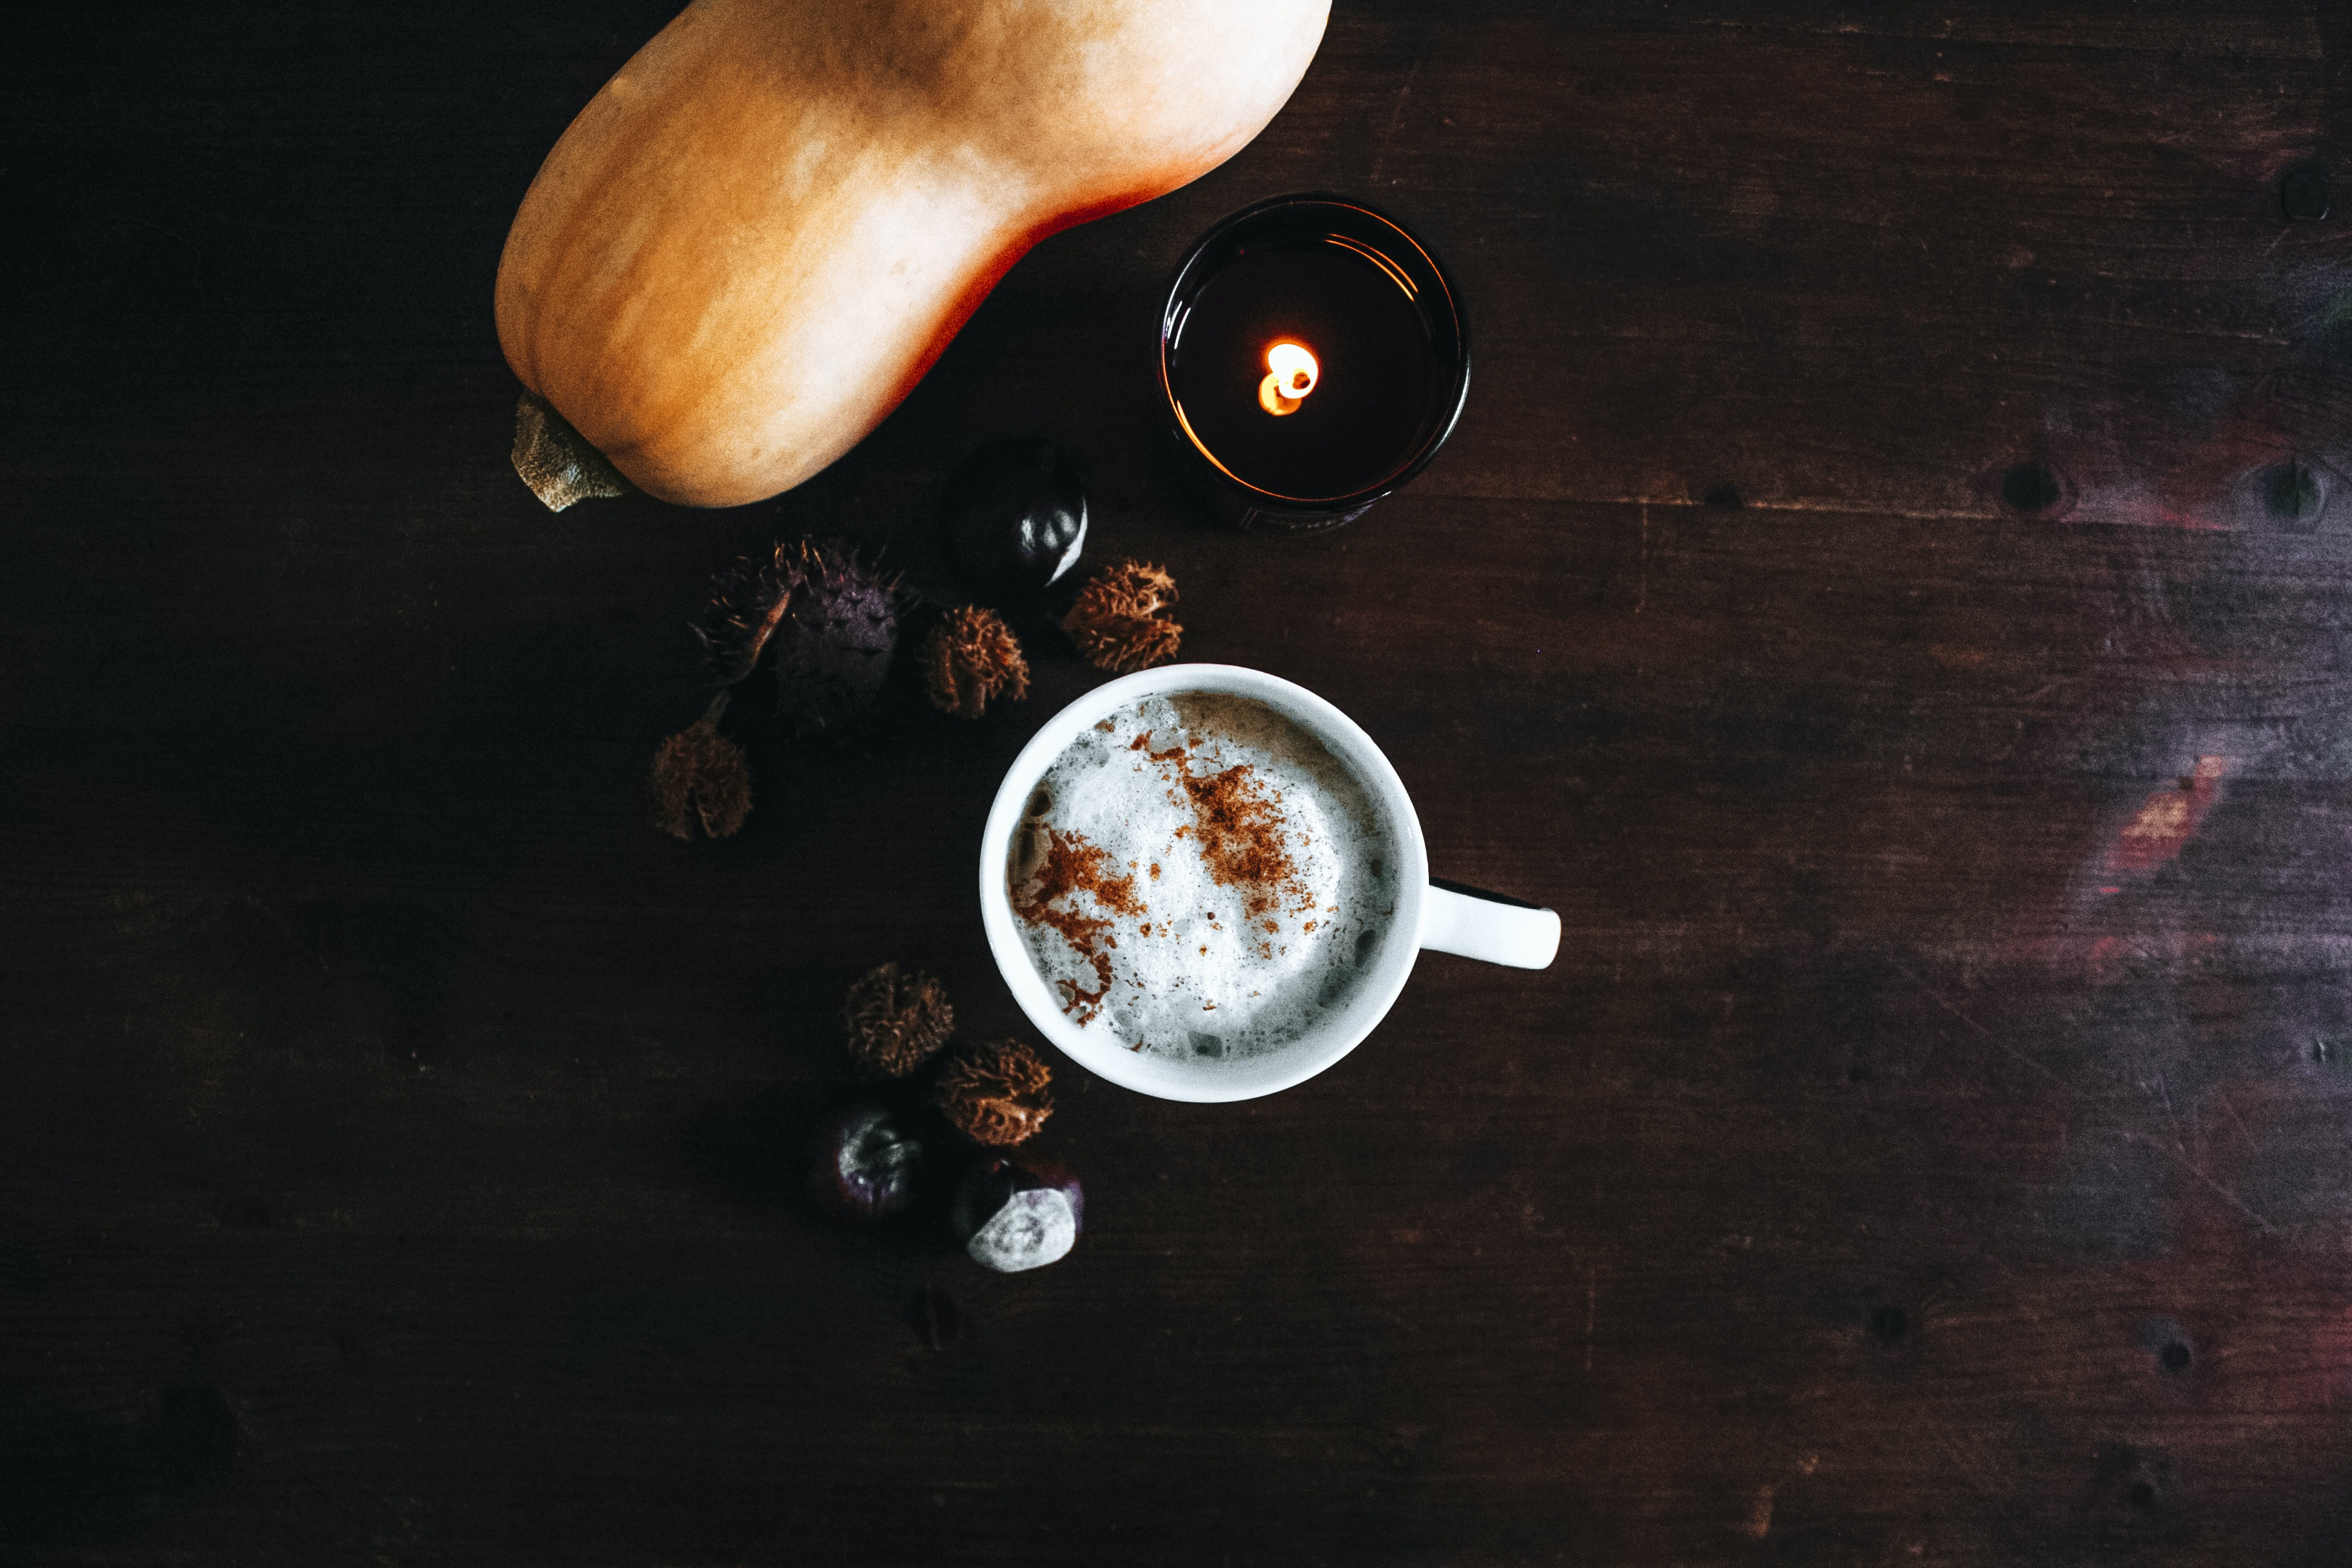 A mug of coffee spiced with cinnamon beside a squash and a candle